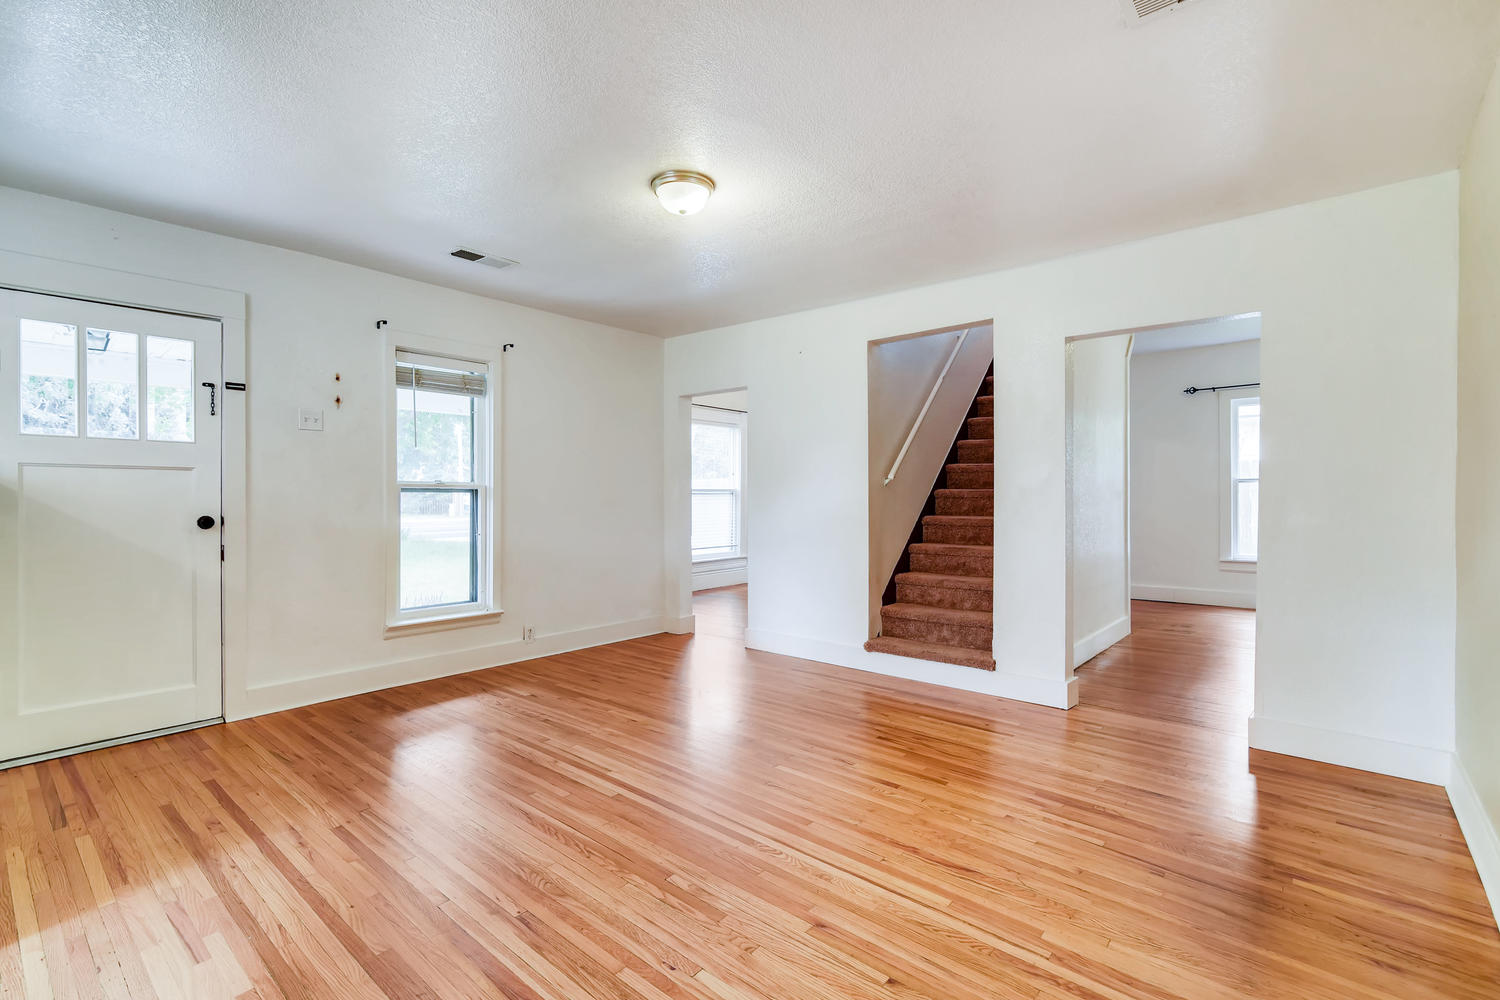 REAL ESTATE LISTING: 1201 E 1st Street Loveland CO Main Living Area